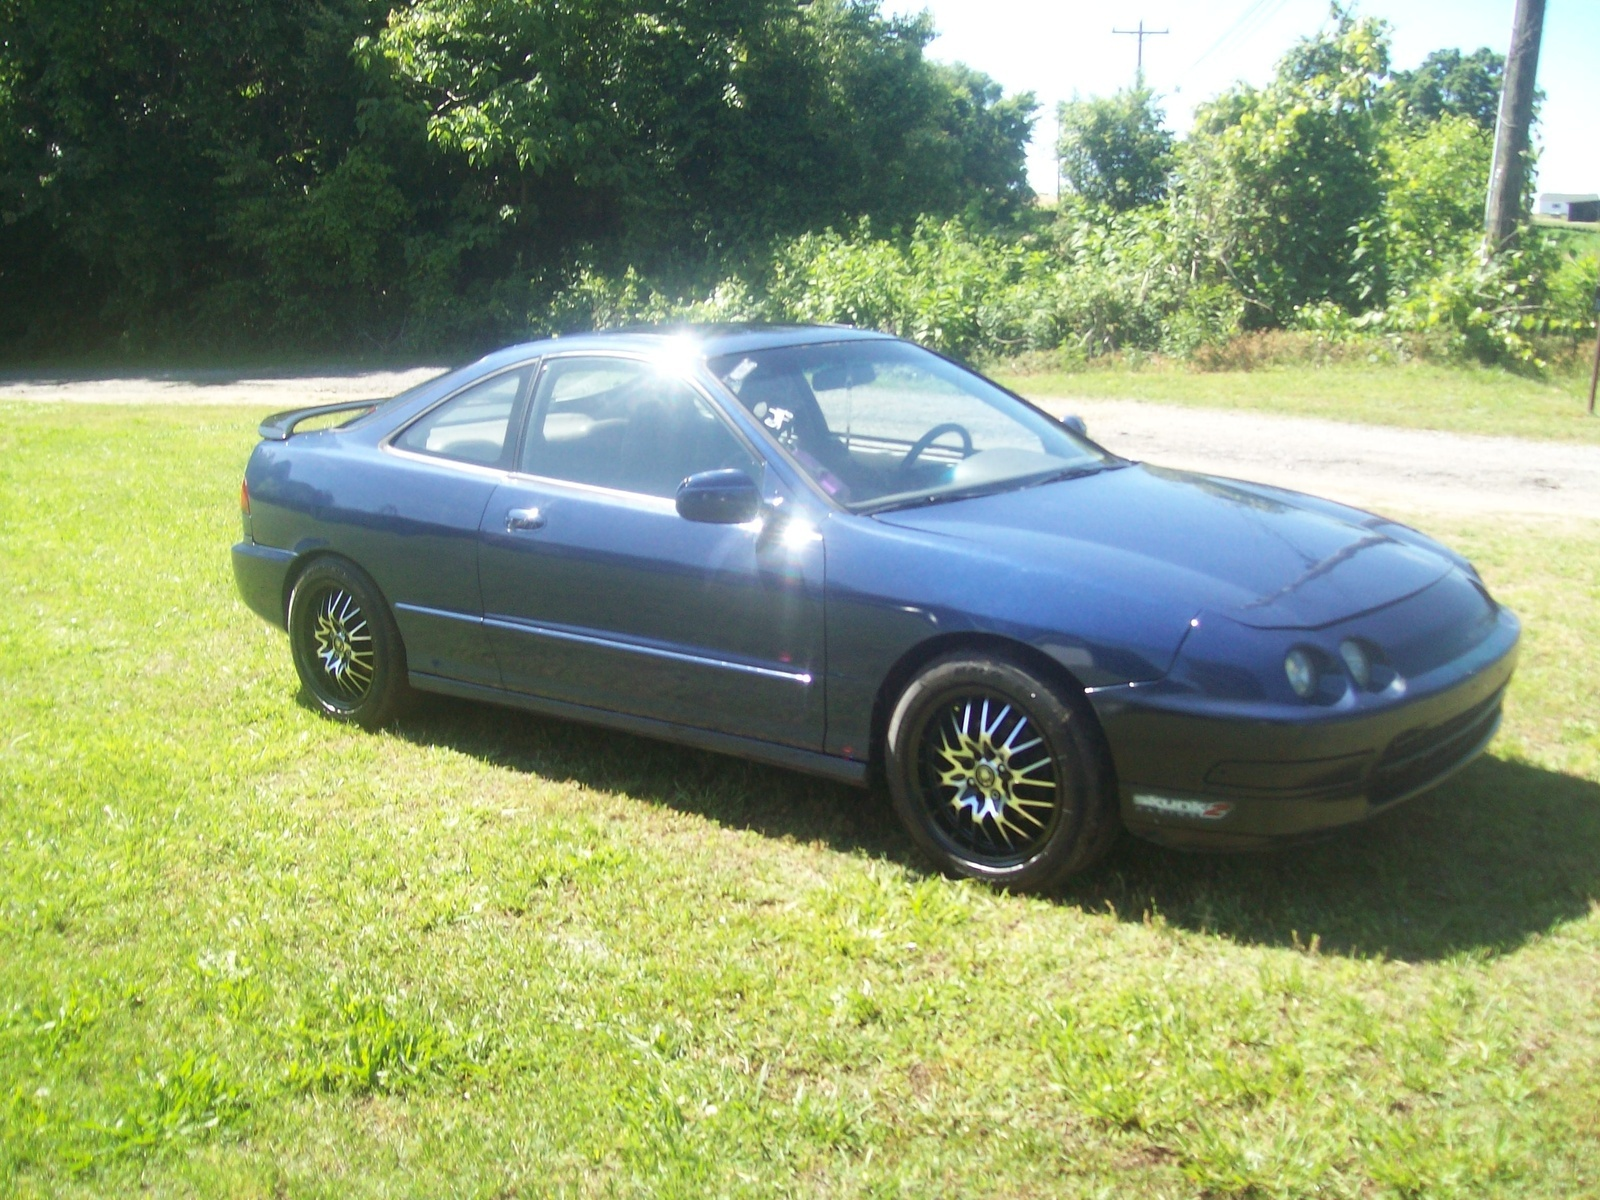 Acura Integra Questions Best Way To Replace Front Wheel Studs On - Rims for acura integra